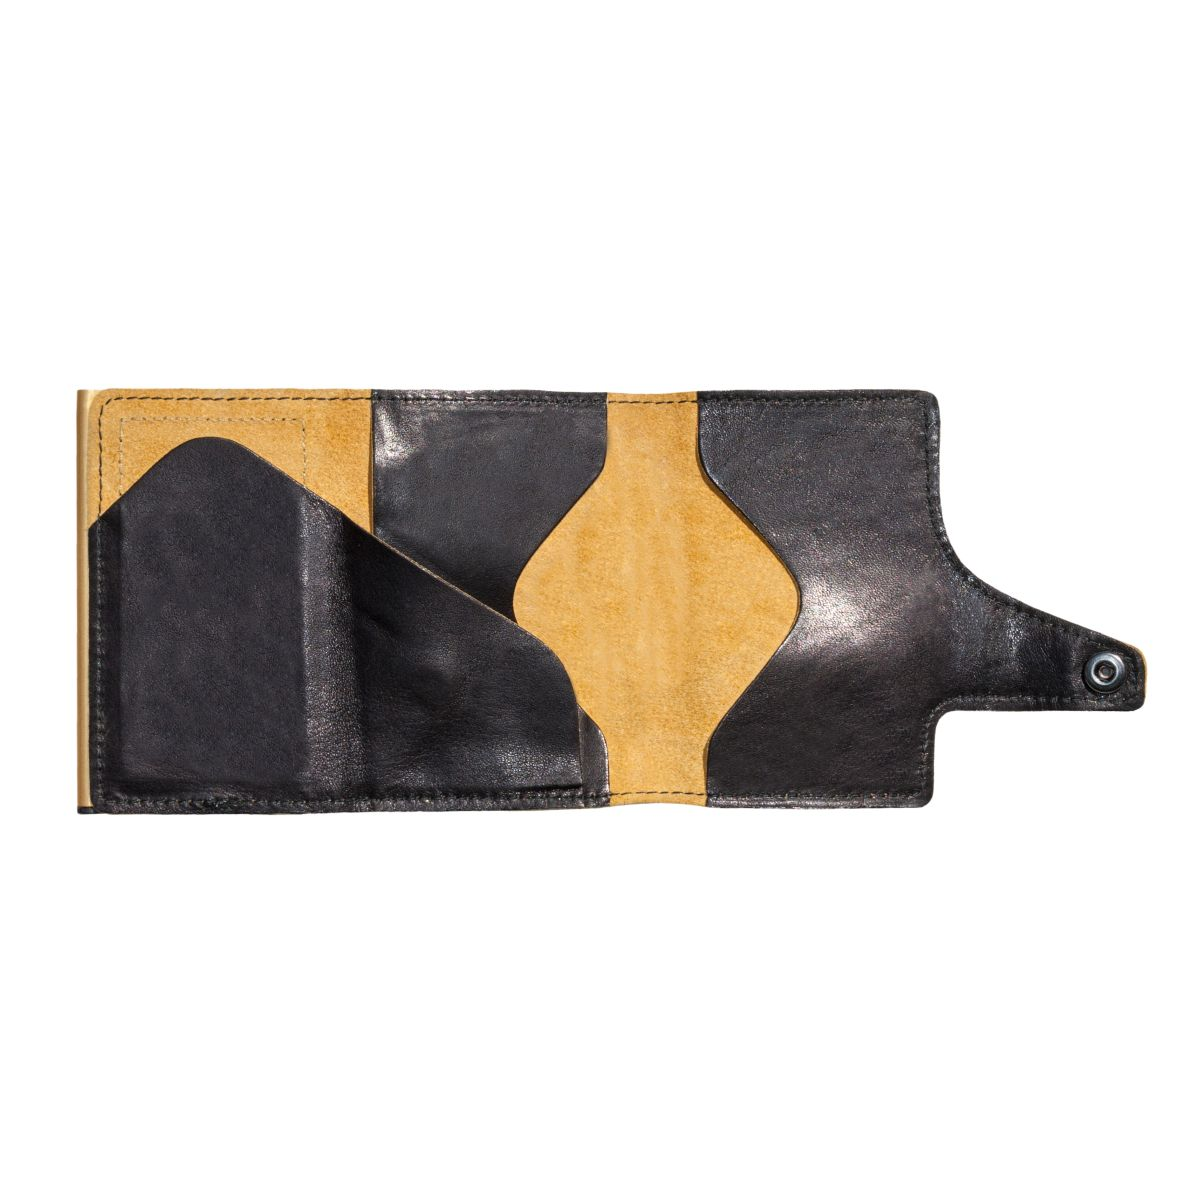 TRU VIRTU Click n Slide Wallet - Caramba Black / Gold